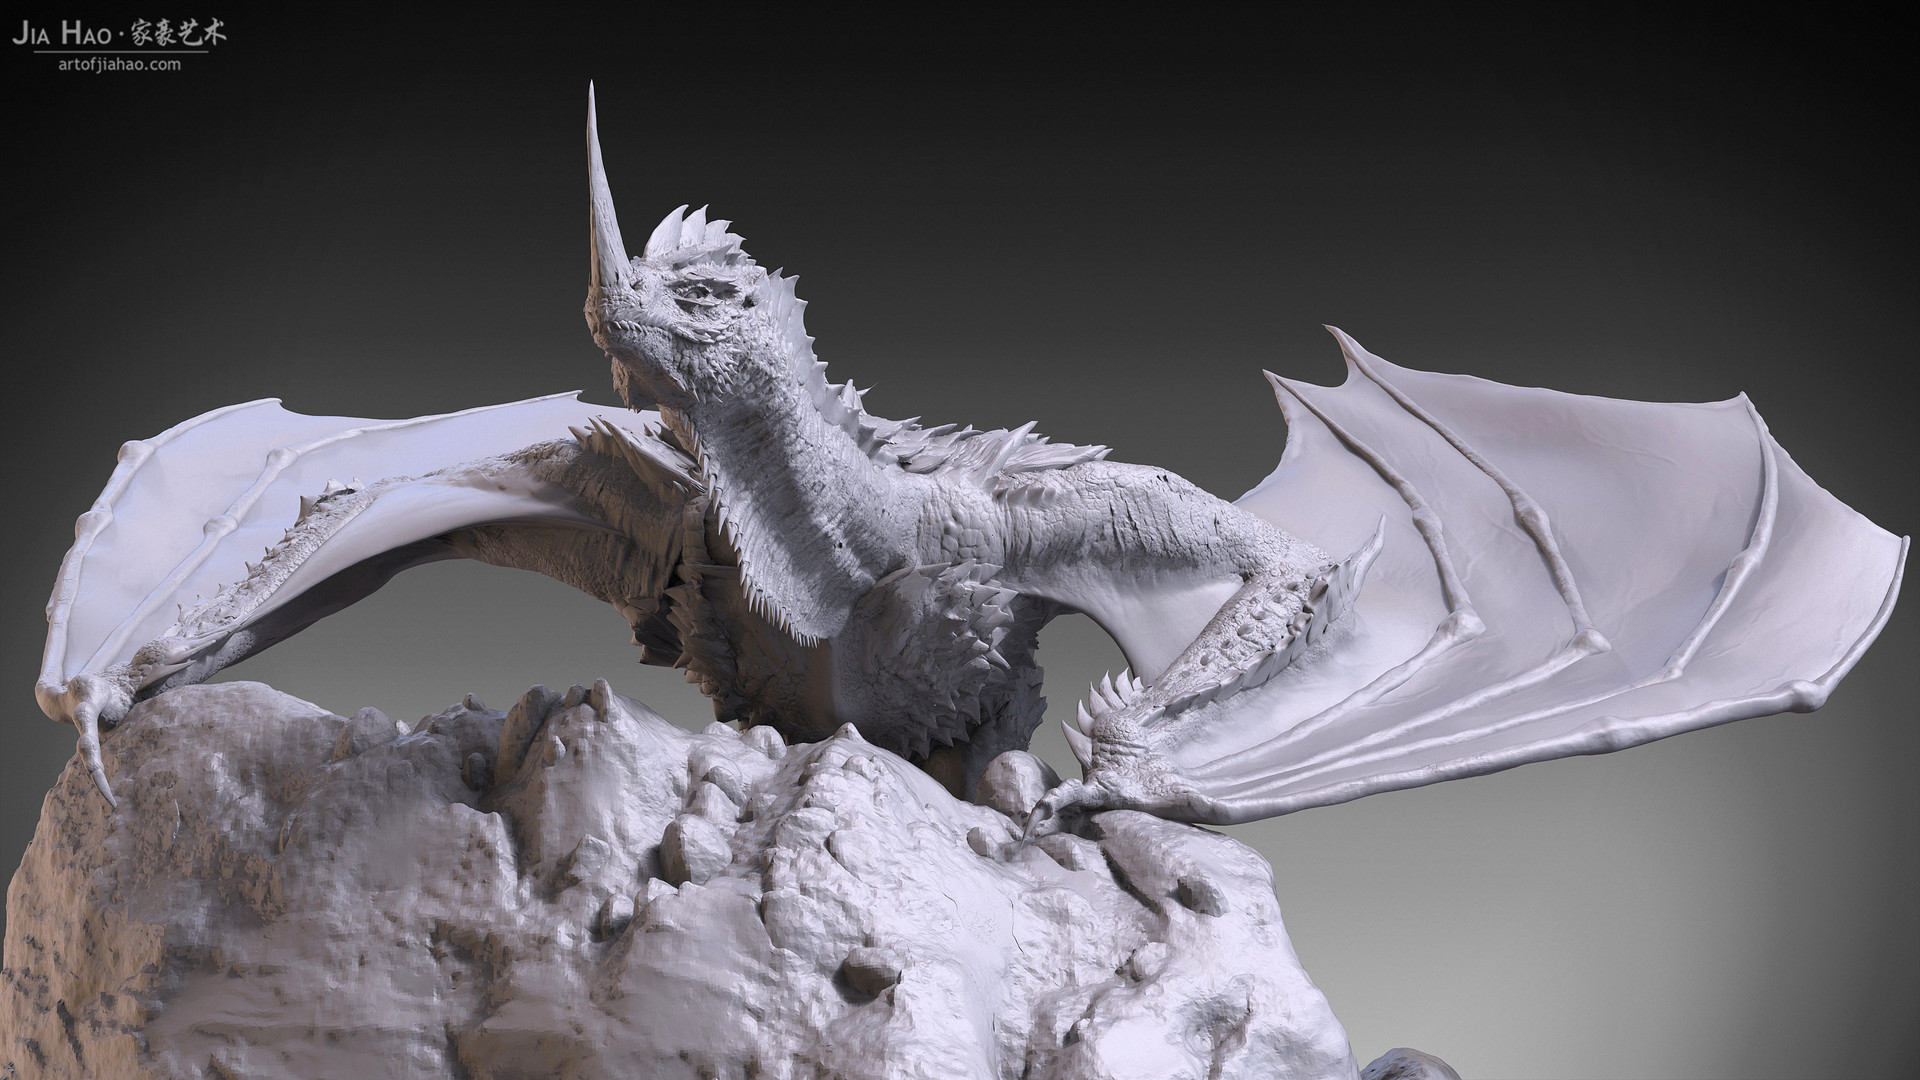 Jia hao 2017 horneddragon digitalsculpting 04